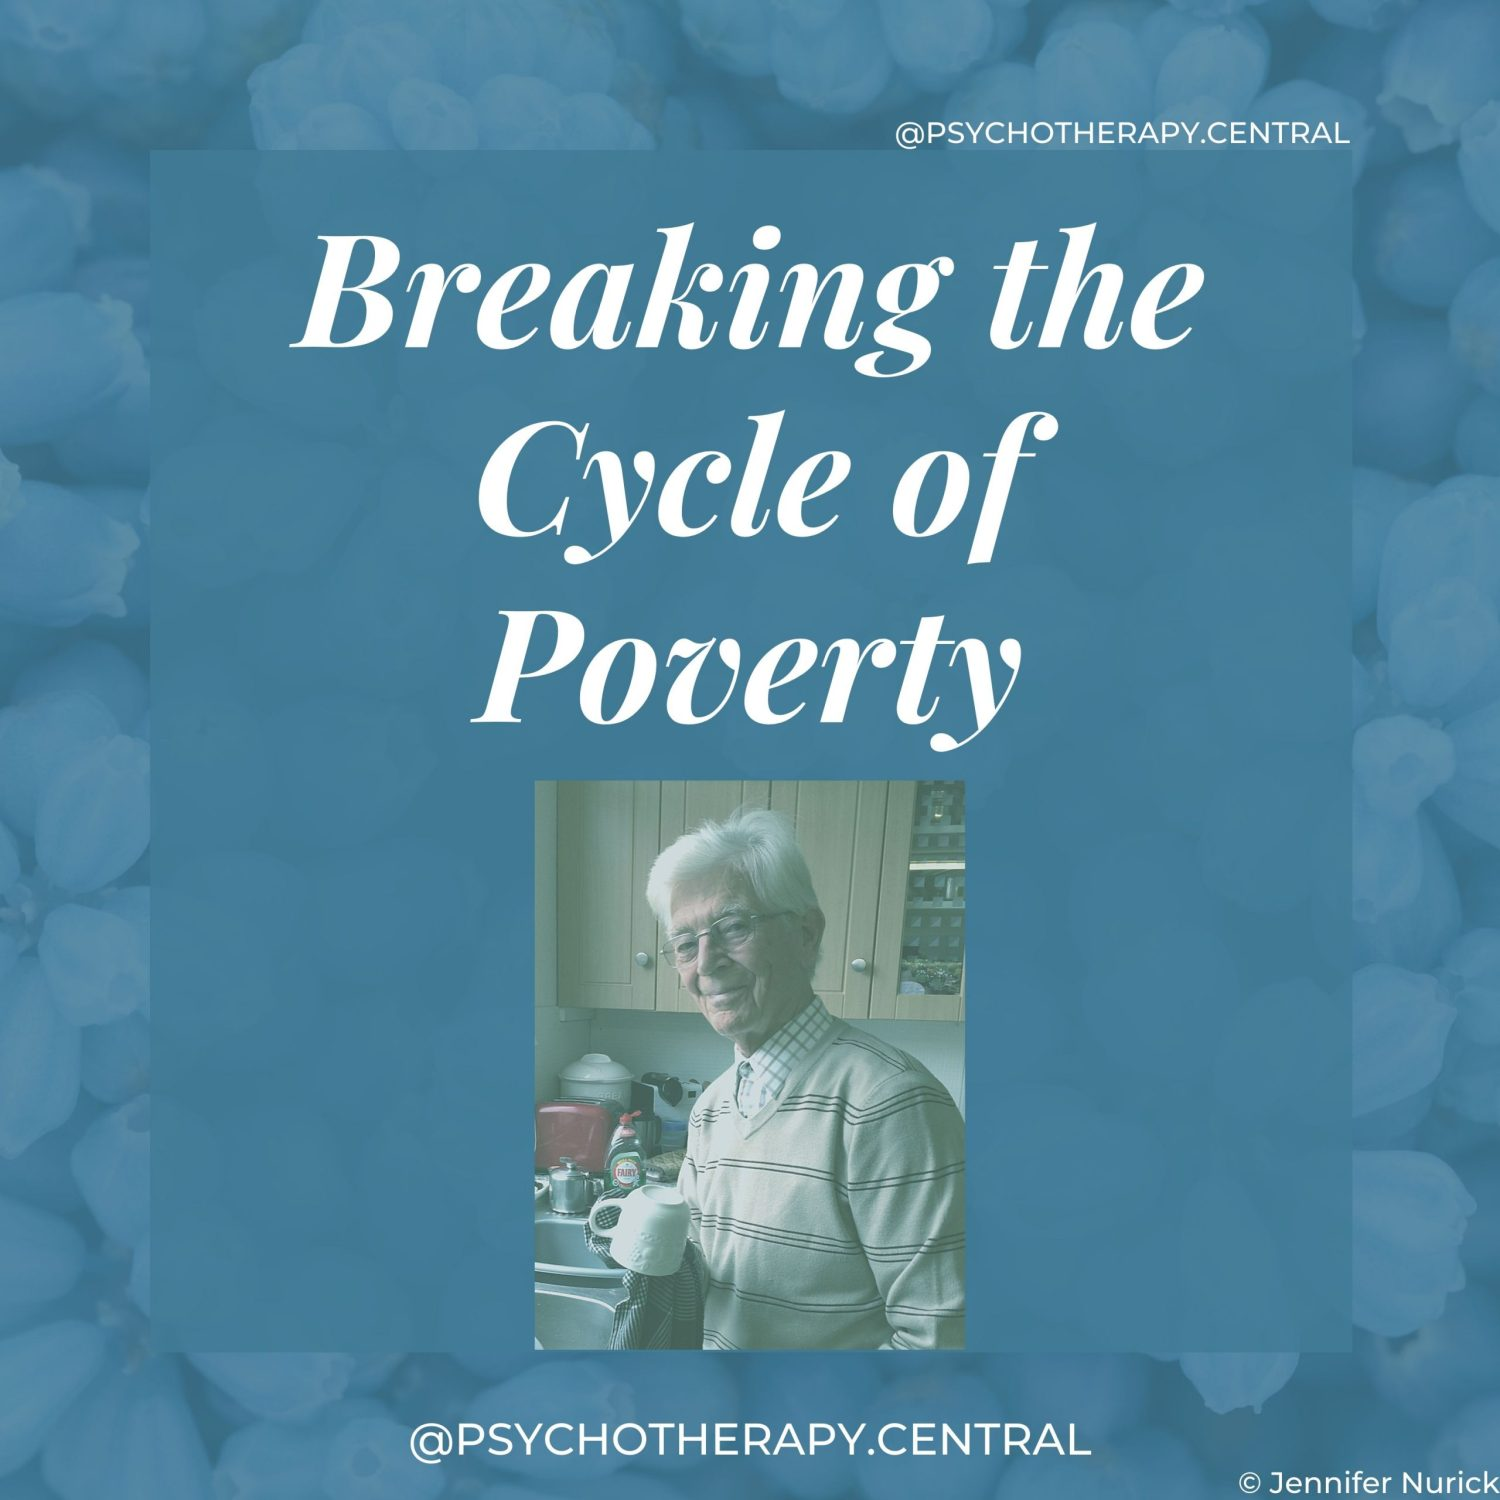 Breaking the Cycle of Poverty